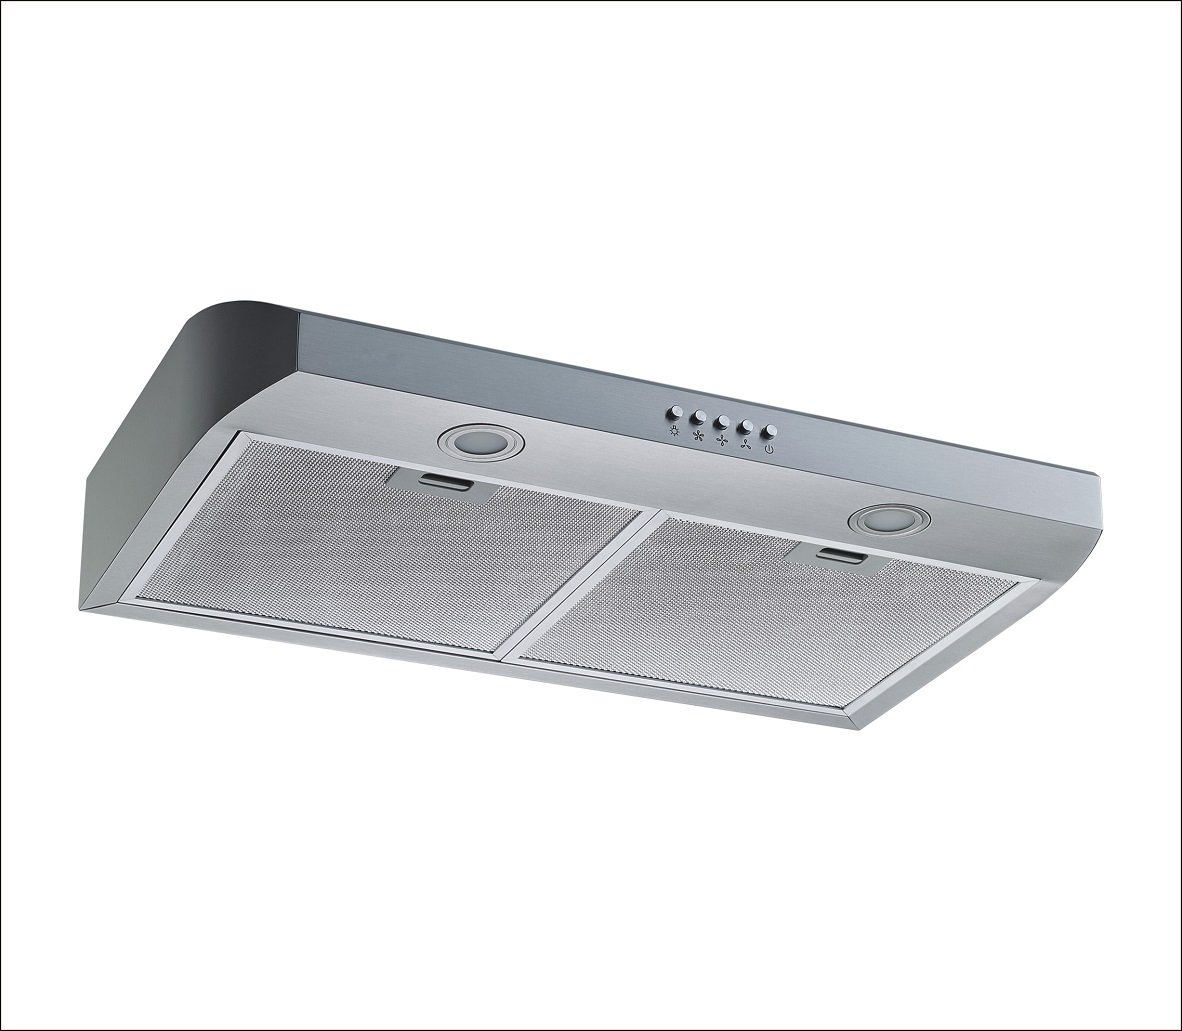 """Winflo 30"""" Under Cabinet Stainless Steel European Slim Design Kitchen Range Hood Push Button Control Included Dishwasher-Safe Aluminum Filters and LED Lights"""